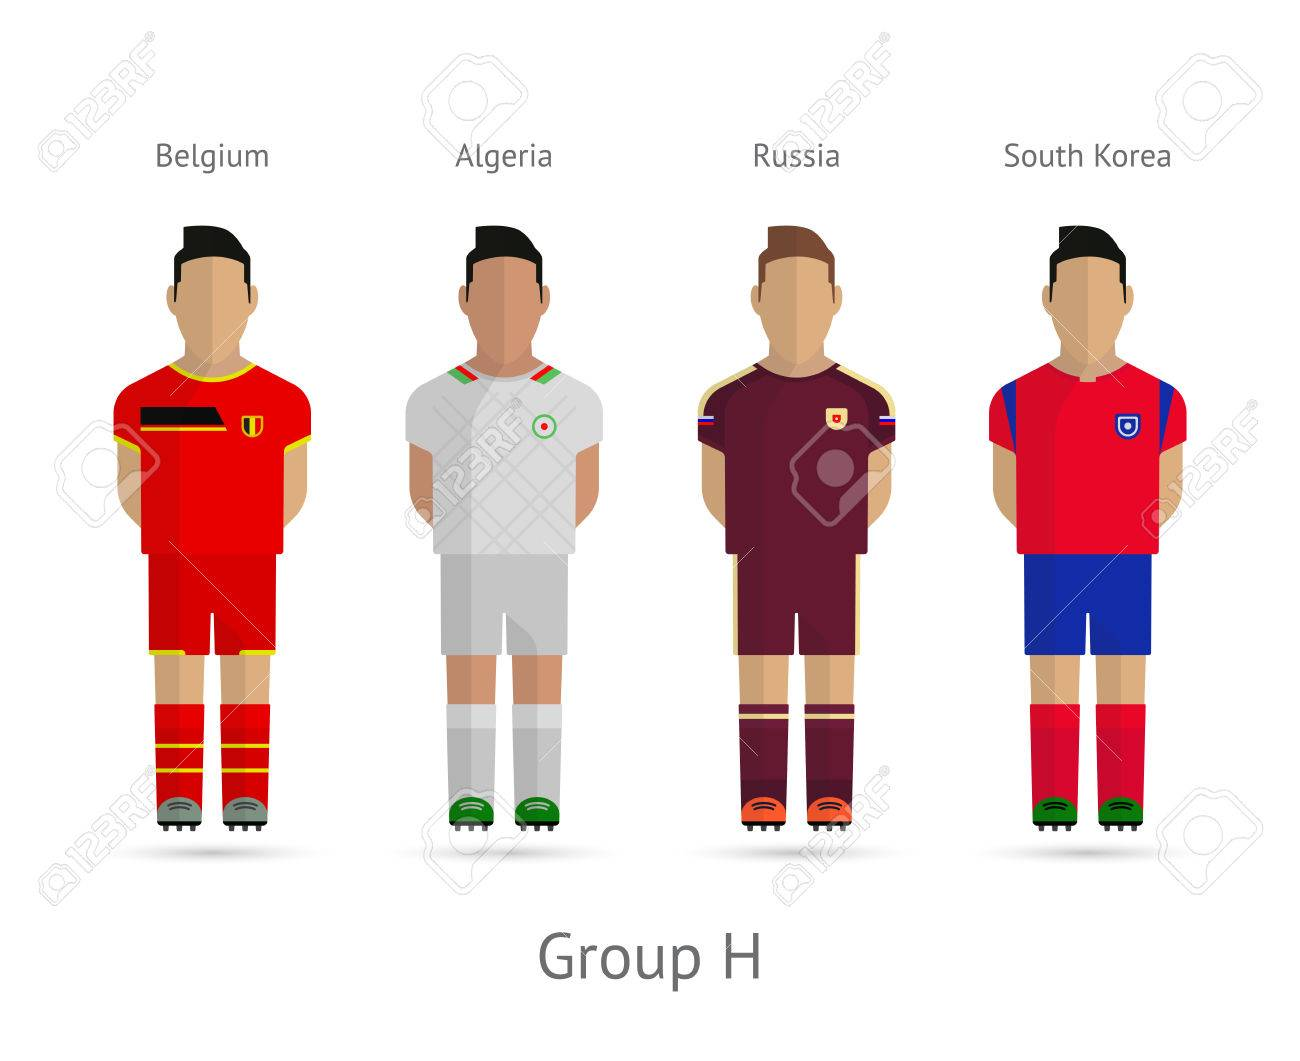 quality design f09cc 725fc Soccer / Football team players. 2014 World Cup Group H - Belgium,..